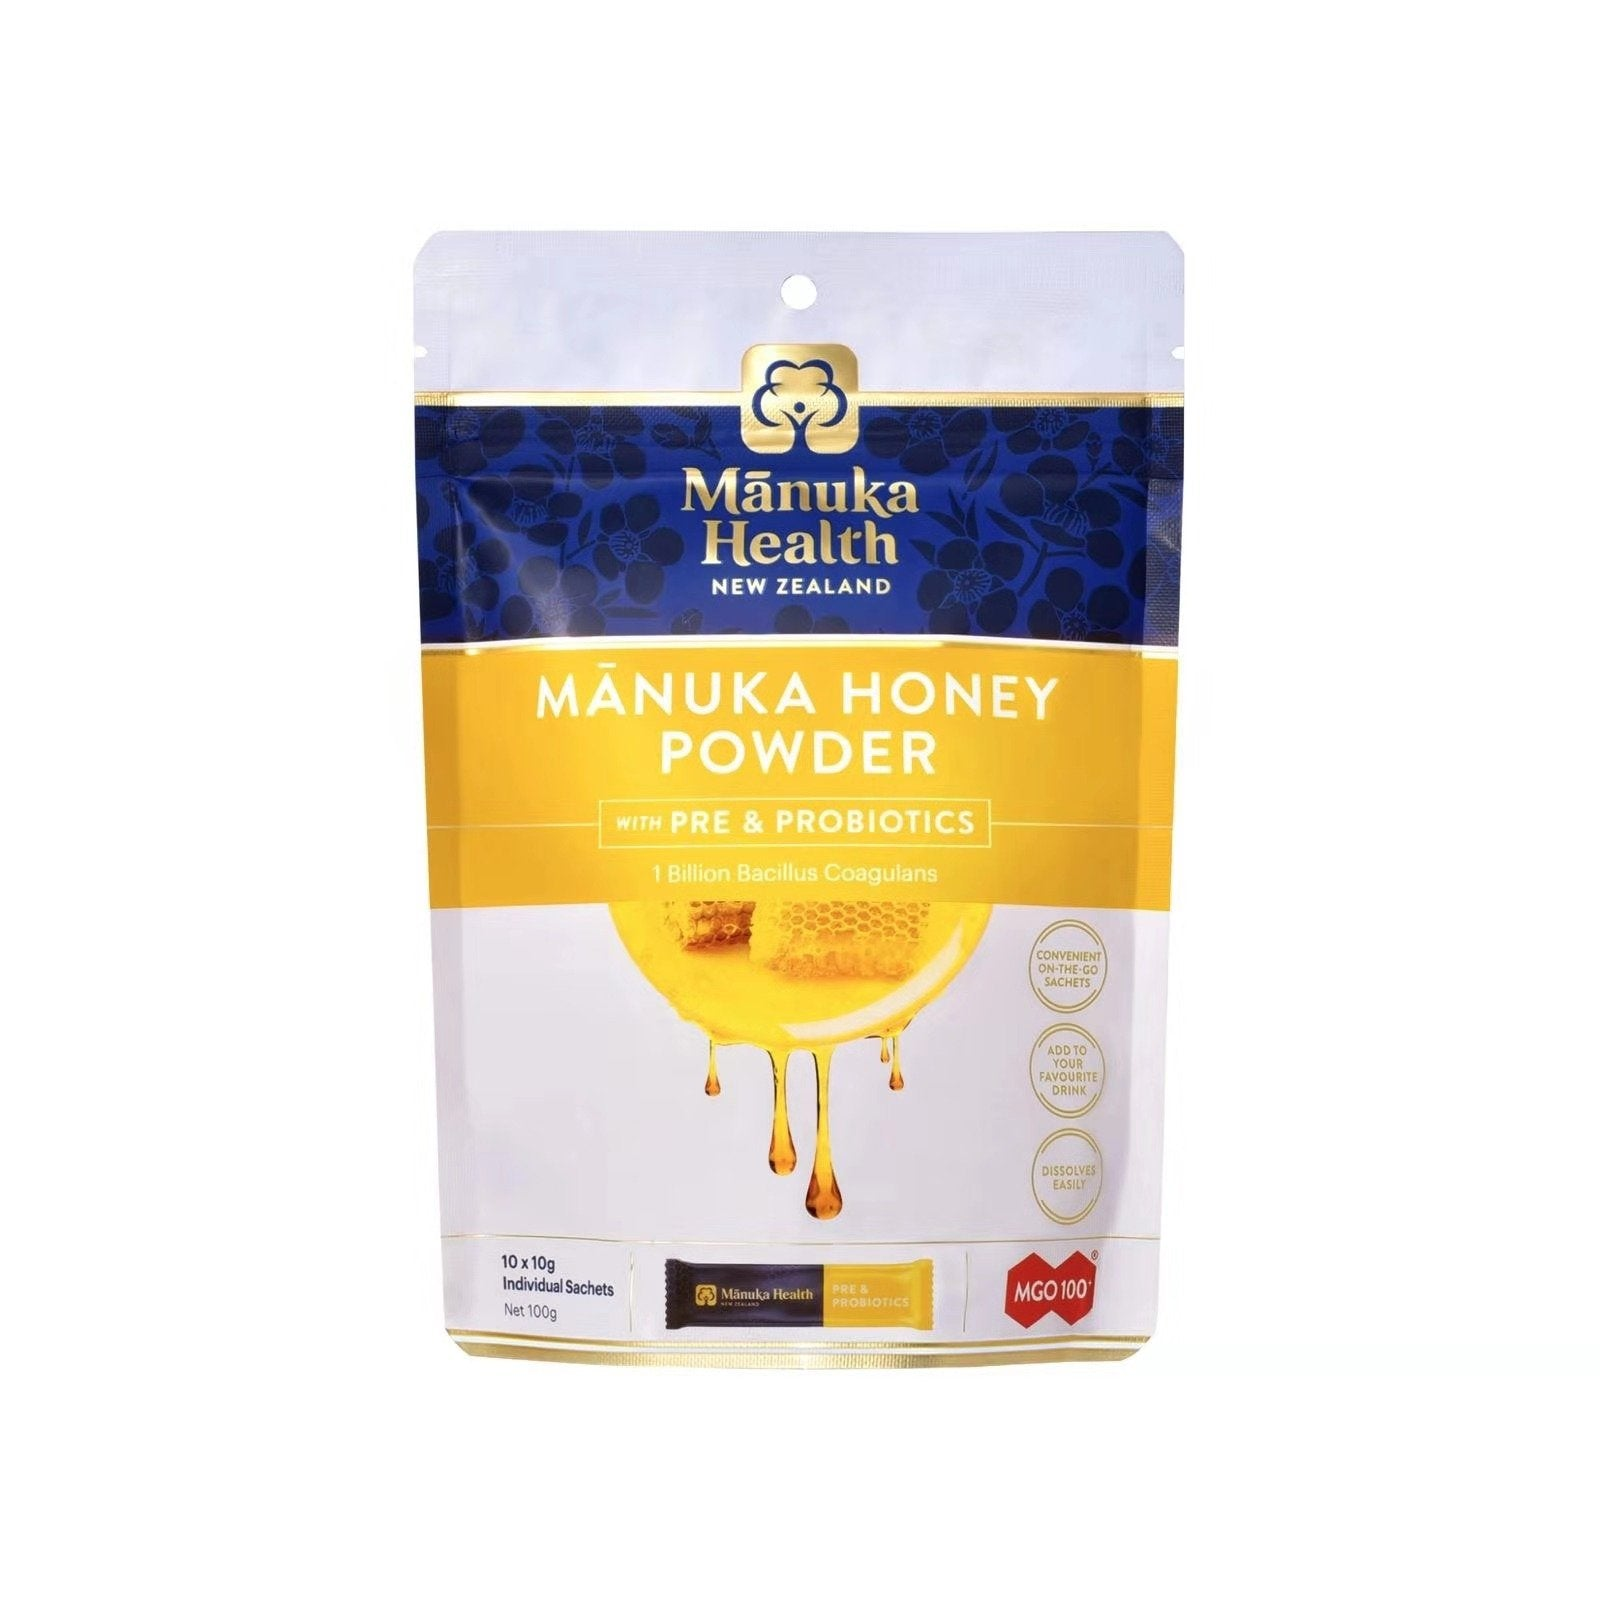 Manuka Honey Powder - Pre & Probiotics - Health & Supplements | Manuka Health